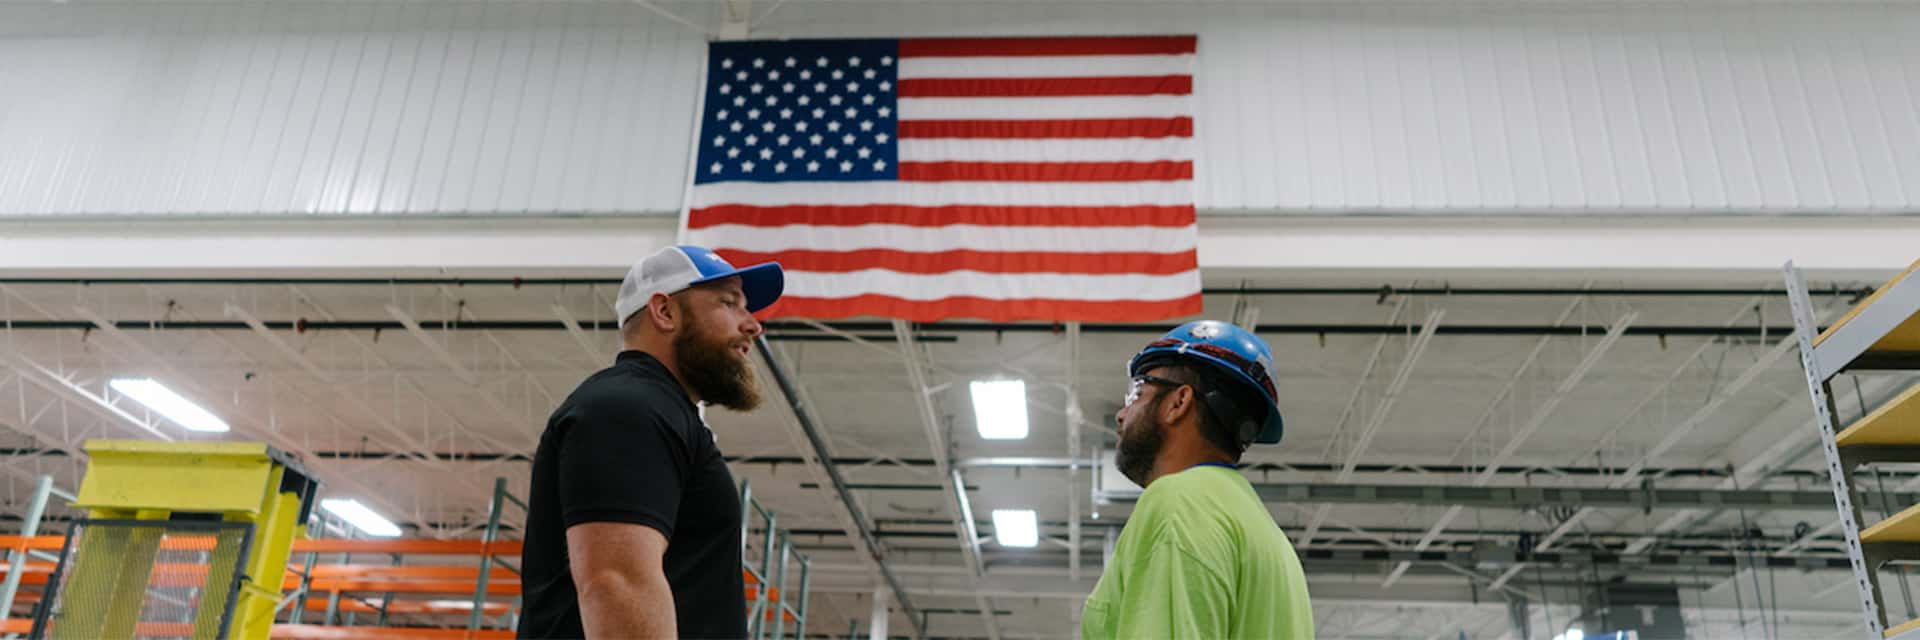 electricians talking under American flag